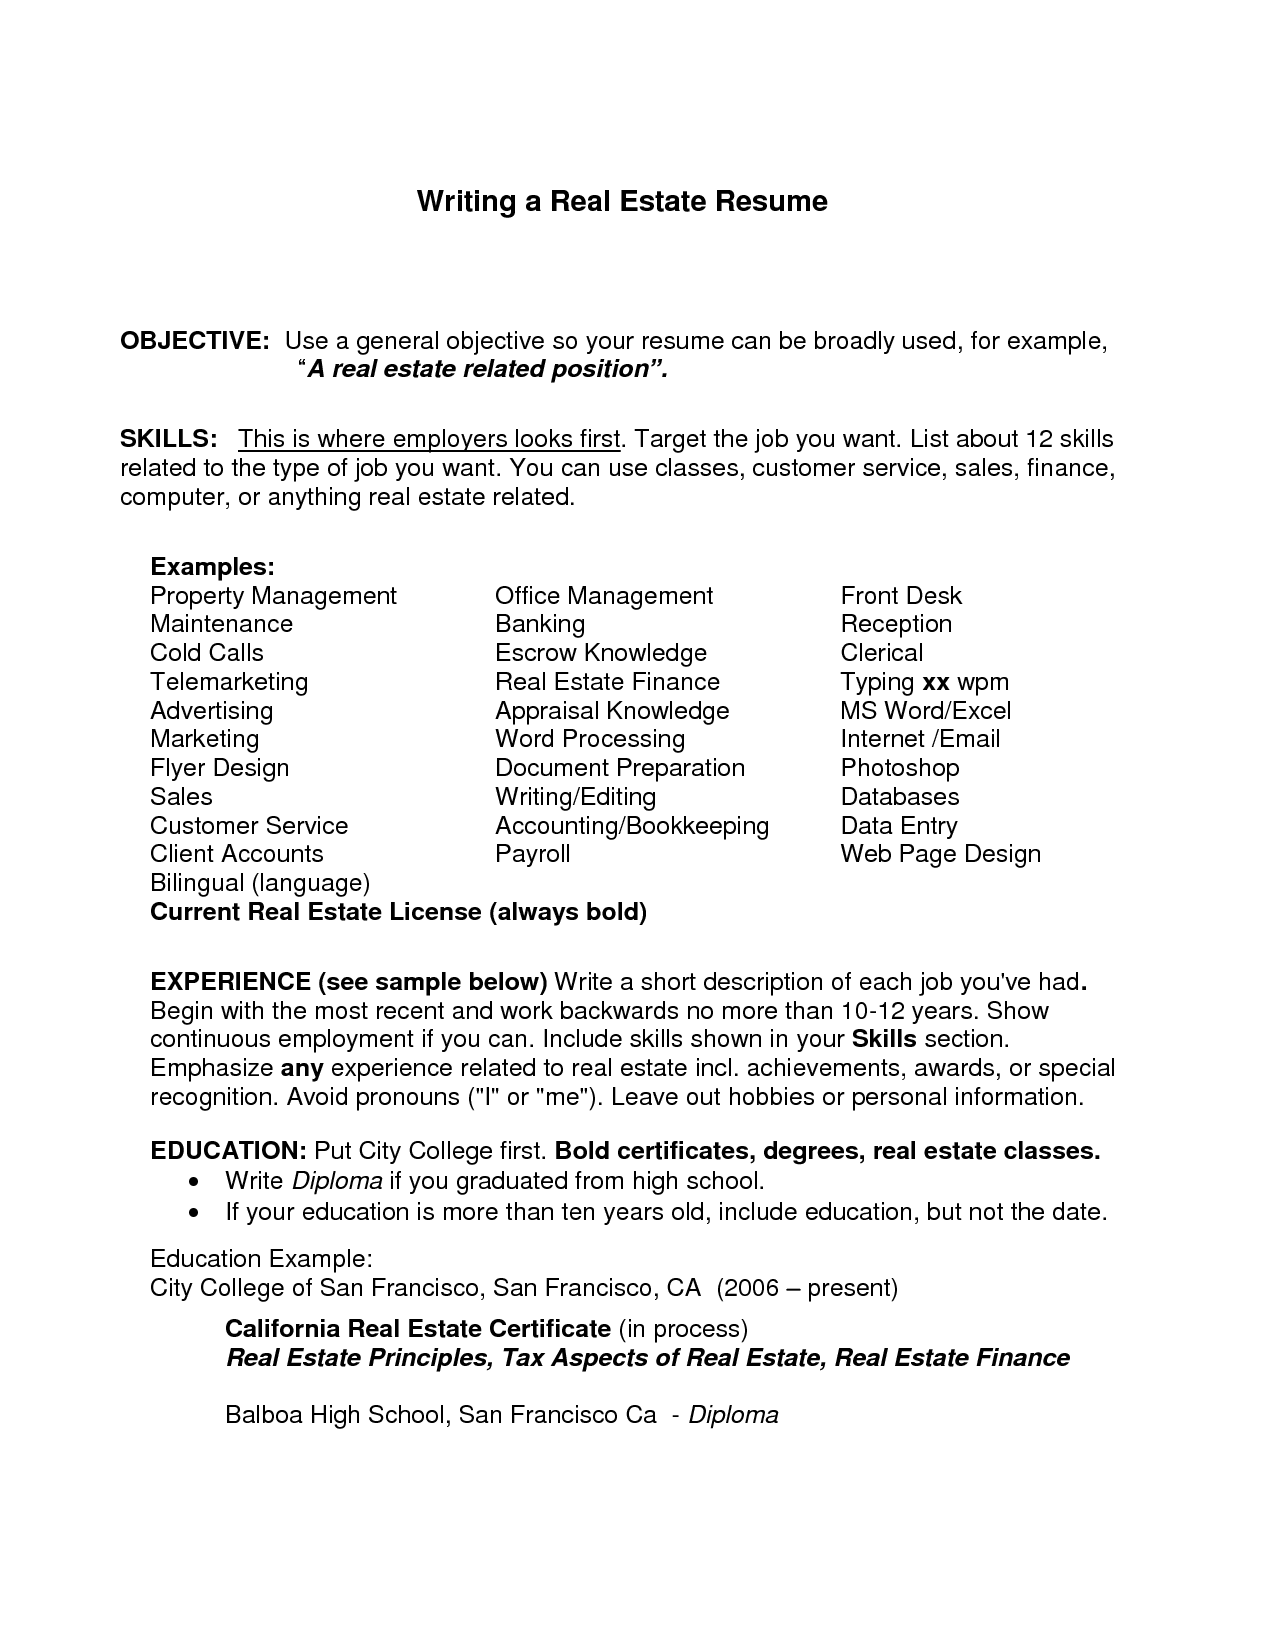 Sample Resume Objective Statement General Resume Objective Examplesjob Resume Objective Examples